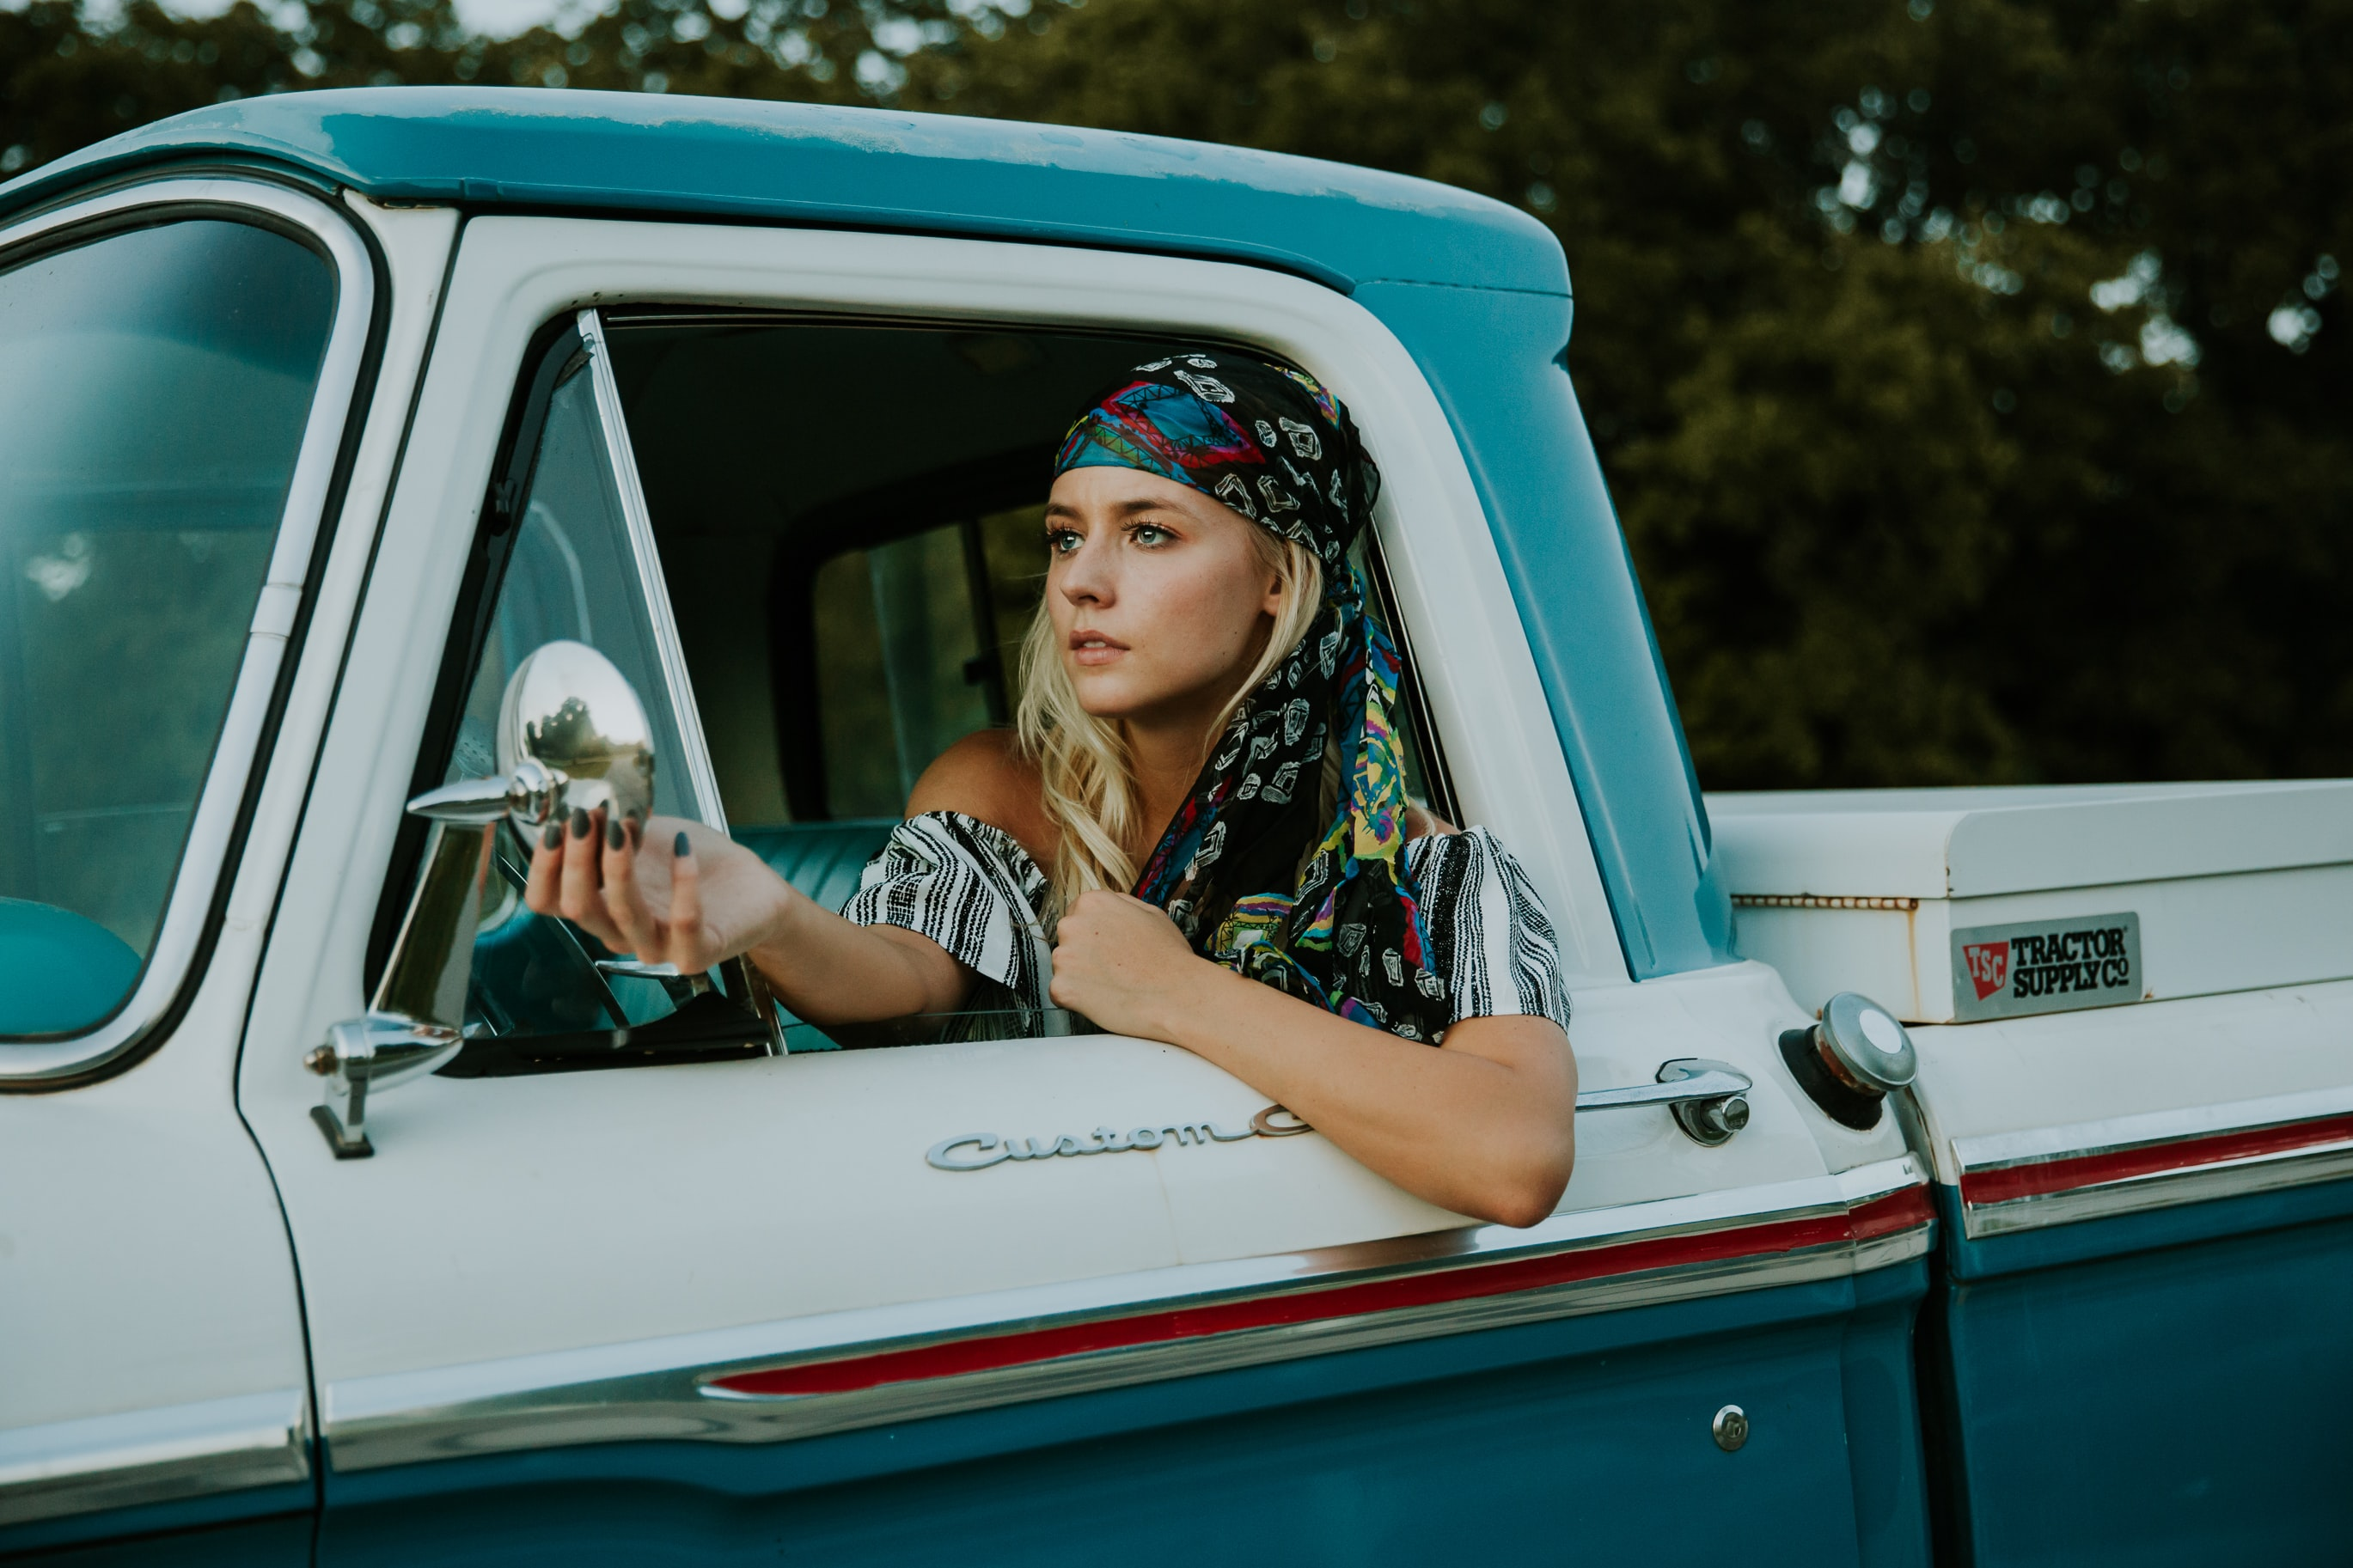 Attractive young blonde woman in bandana adjusting wing mirror of vintage pickup truck